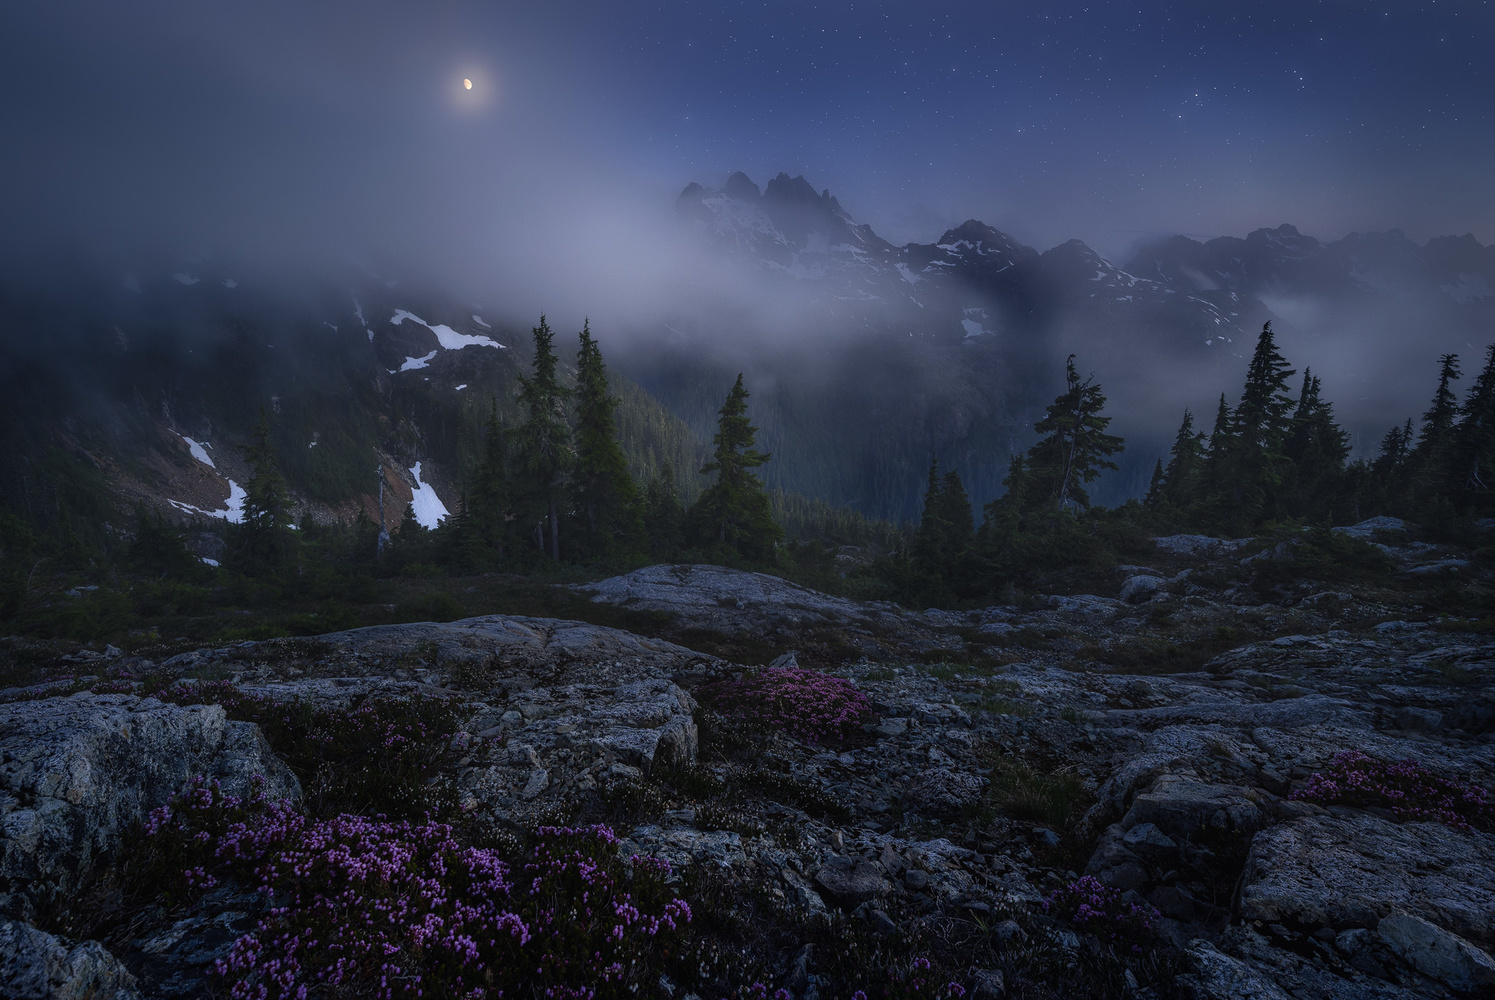 The Veil of Night by Eric Thiessen